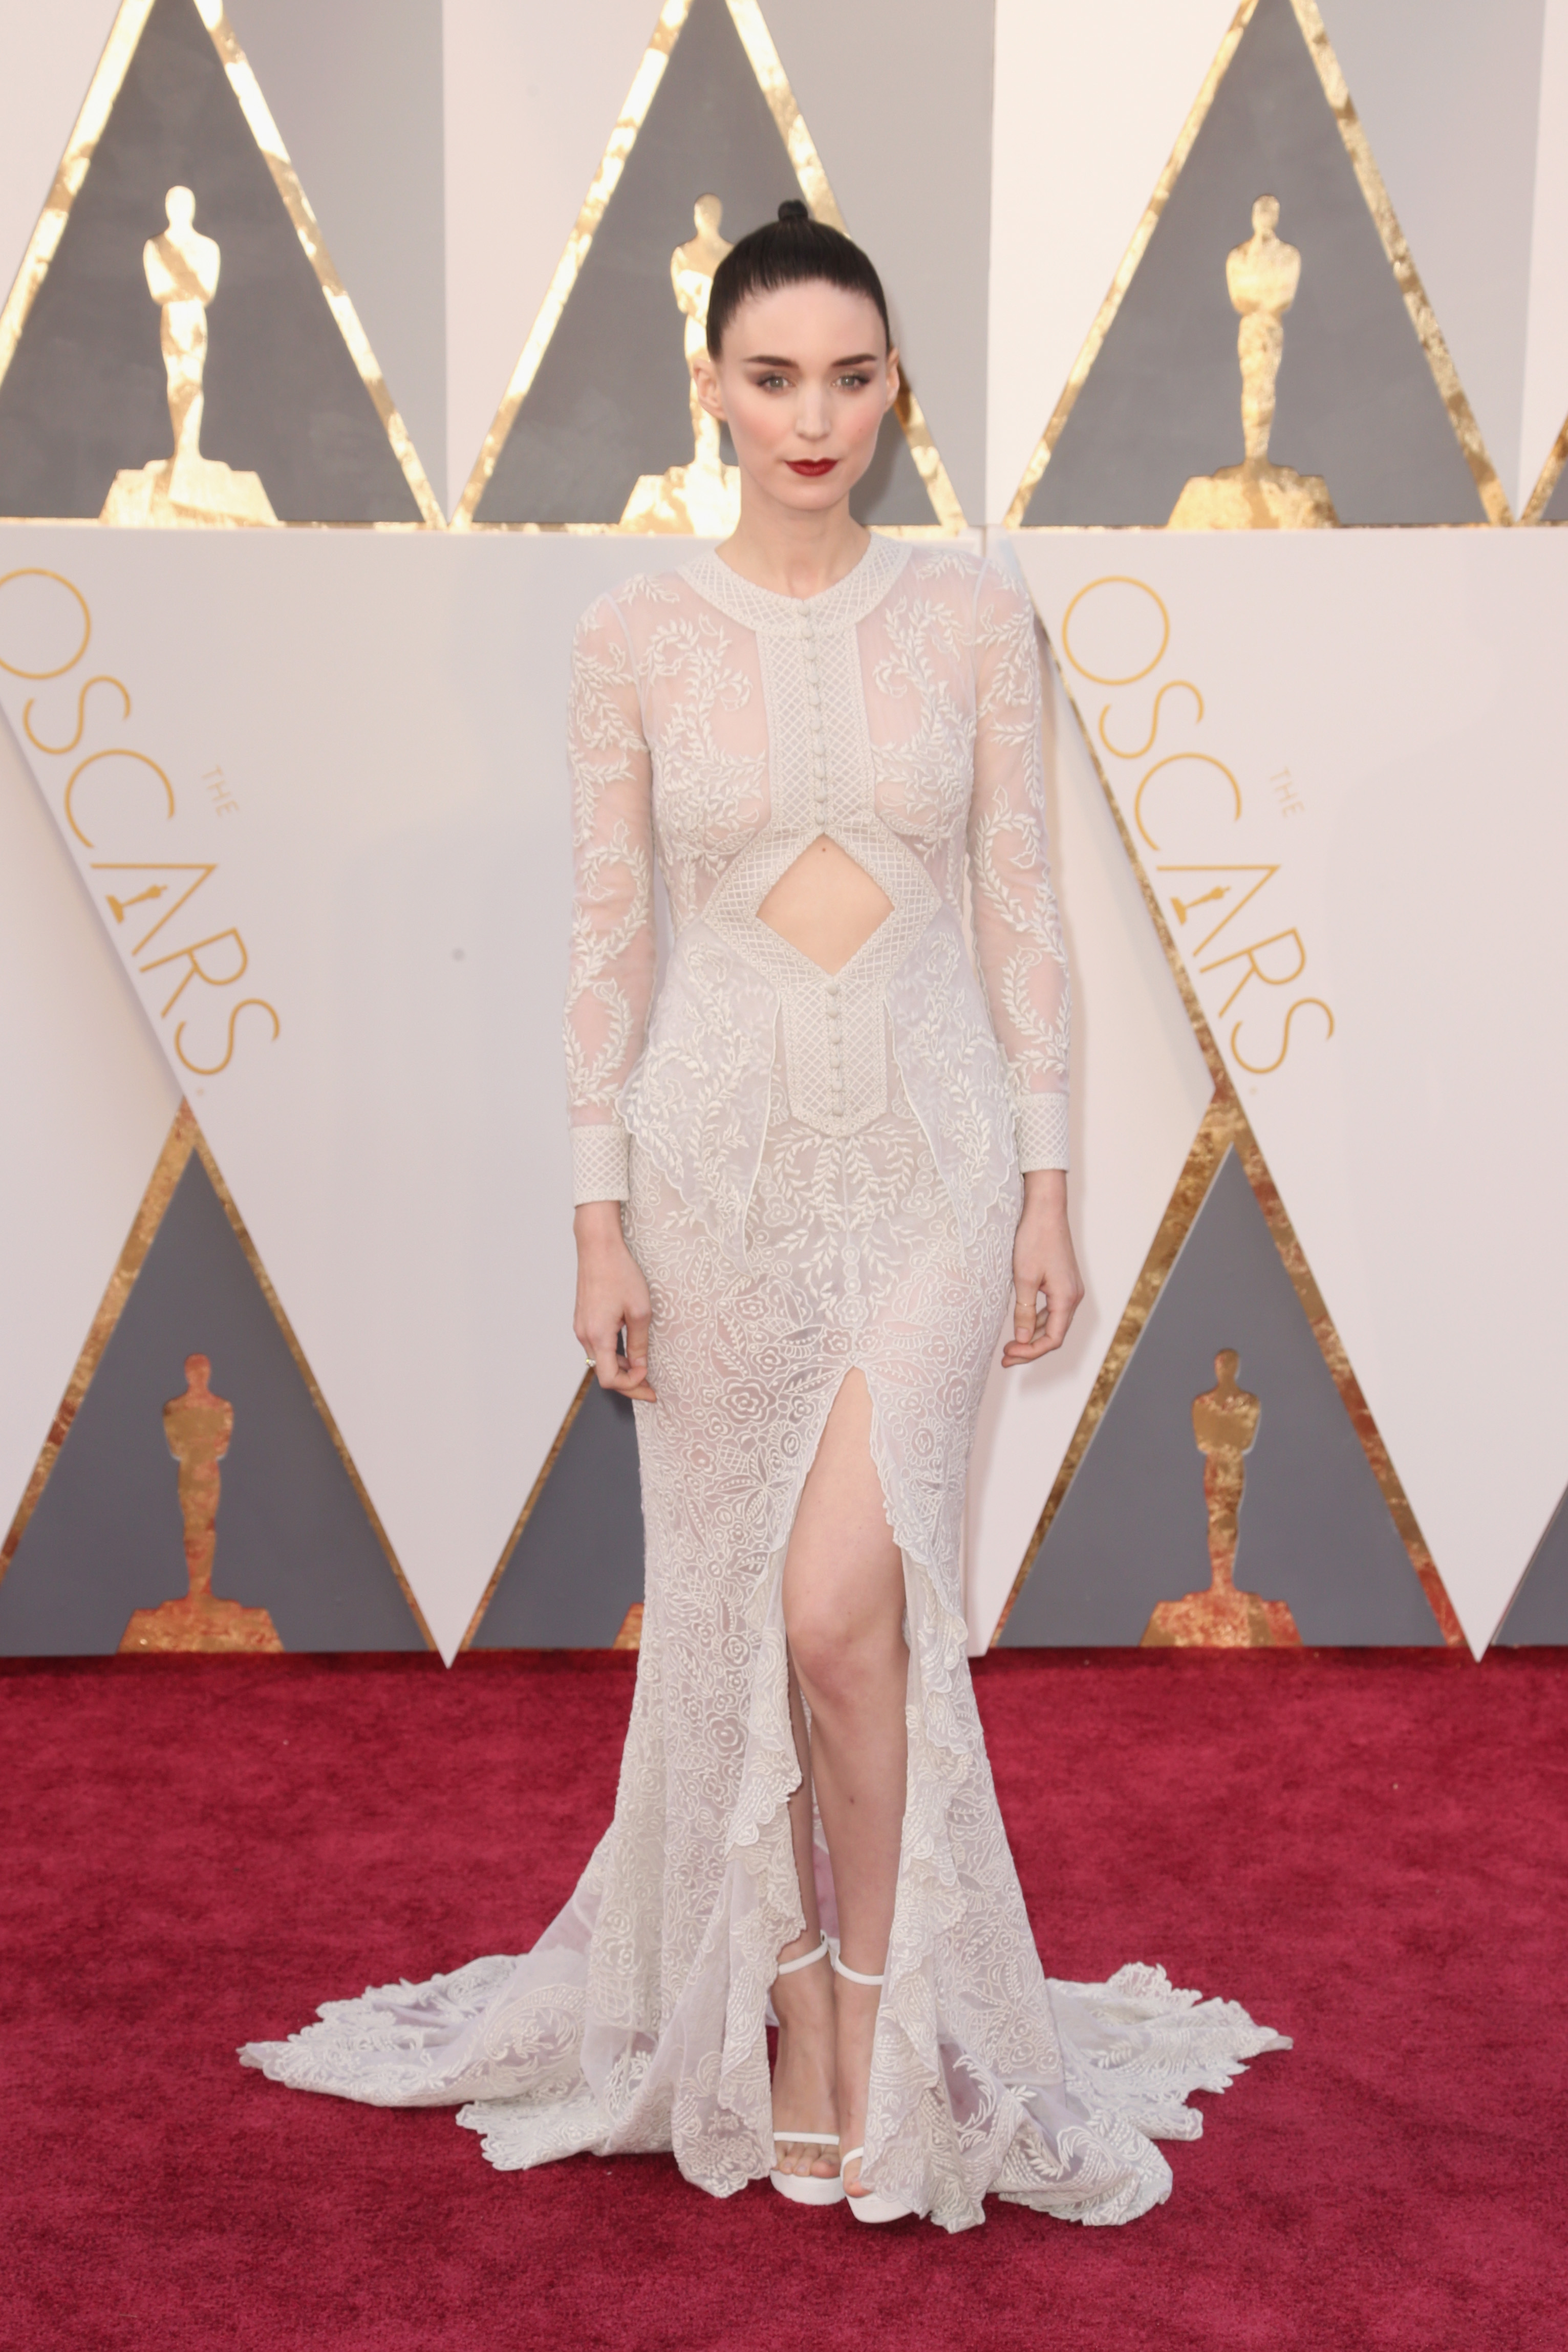 Rooney Mara attends the 88th Annual Academy Awards on Feb. 28, 2016 in Hollywood, Calif.